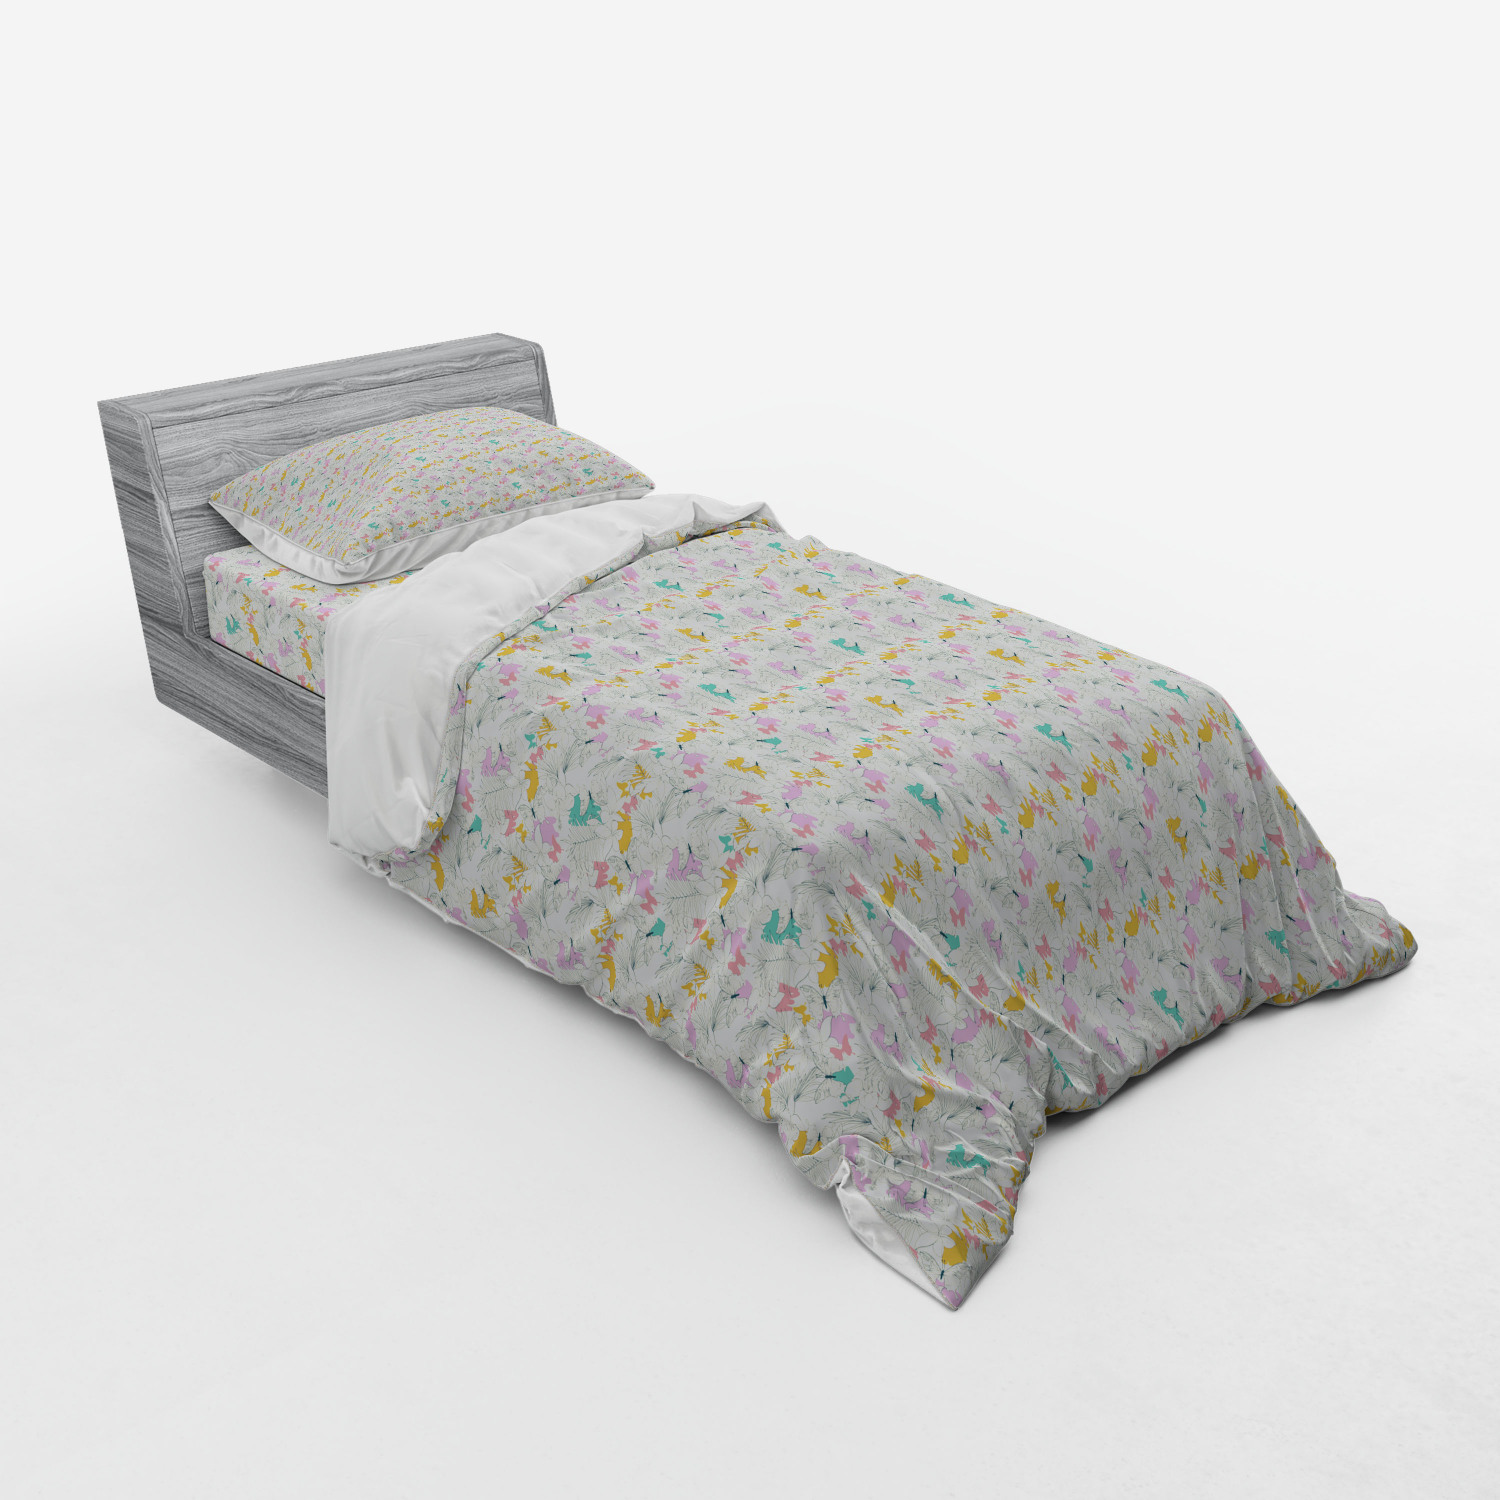 thumbnail 5 - Ambesonne Summer Bedding Set Duvet Cover Sham Fitted Sheet in 3 Sizes